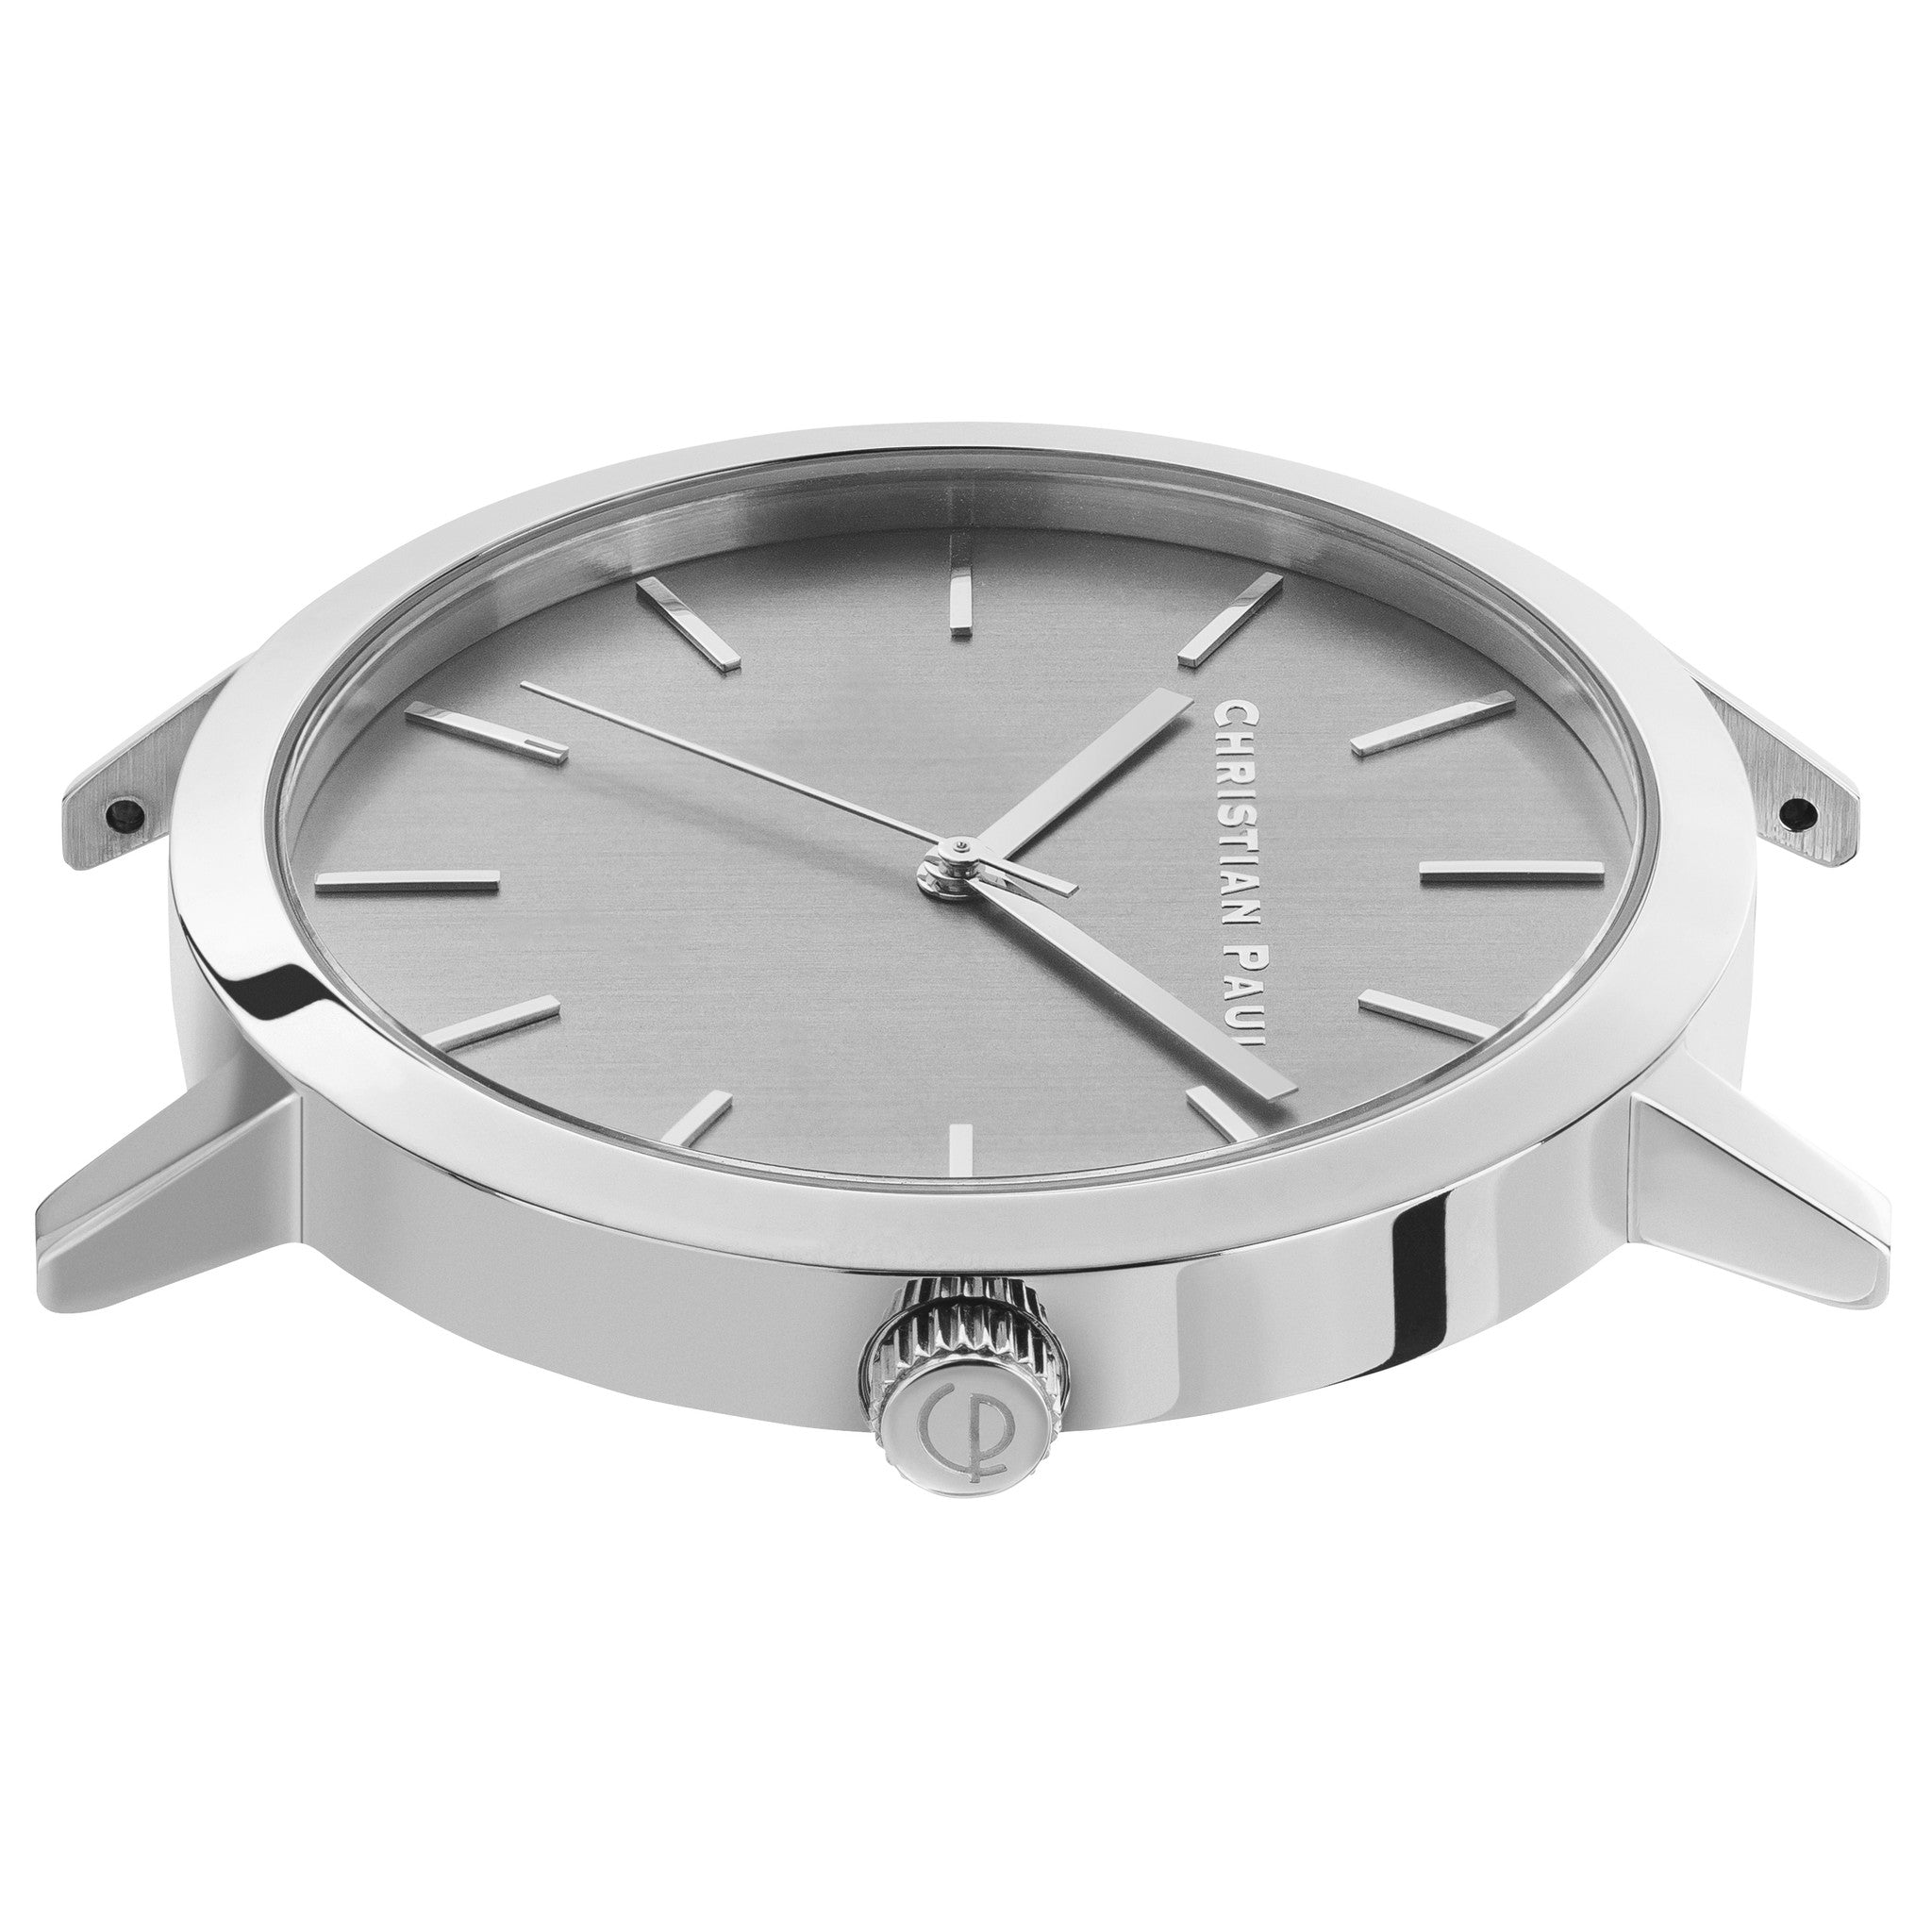 Christian Paul Watch Sydney Silver/Brushed Silver 101 watch